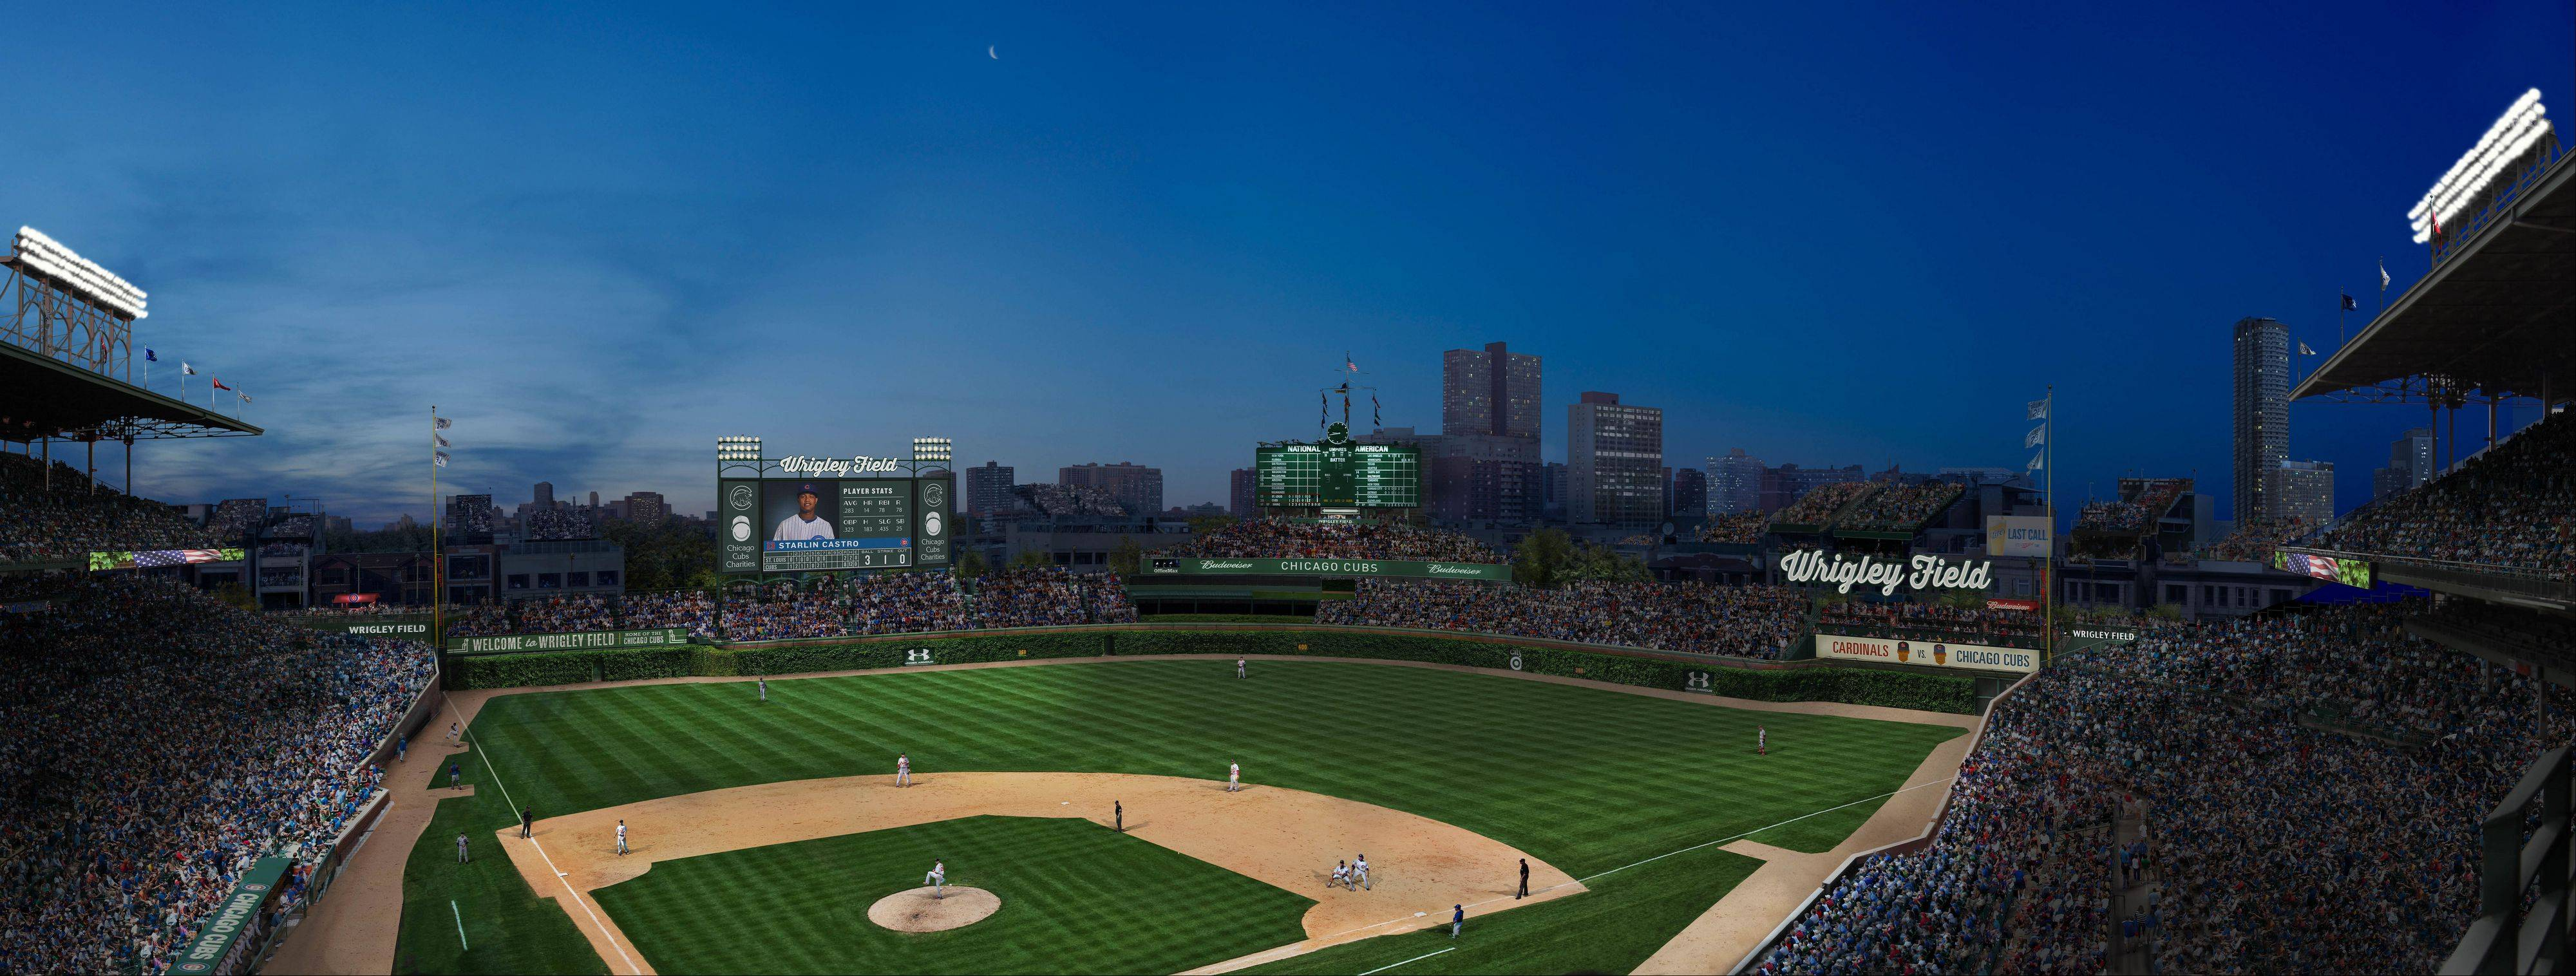 This artist's rendering shows how Wrigley Field might look by the time its 100th anniversary rolls around next season.